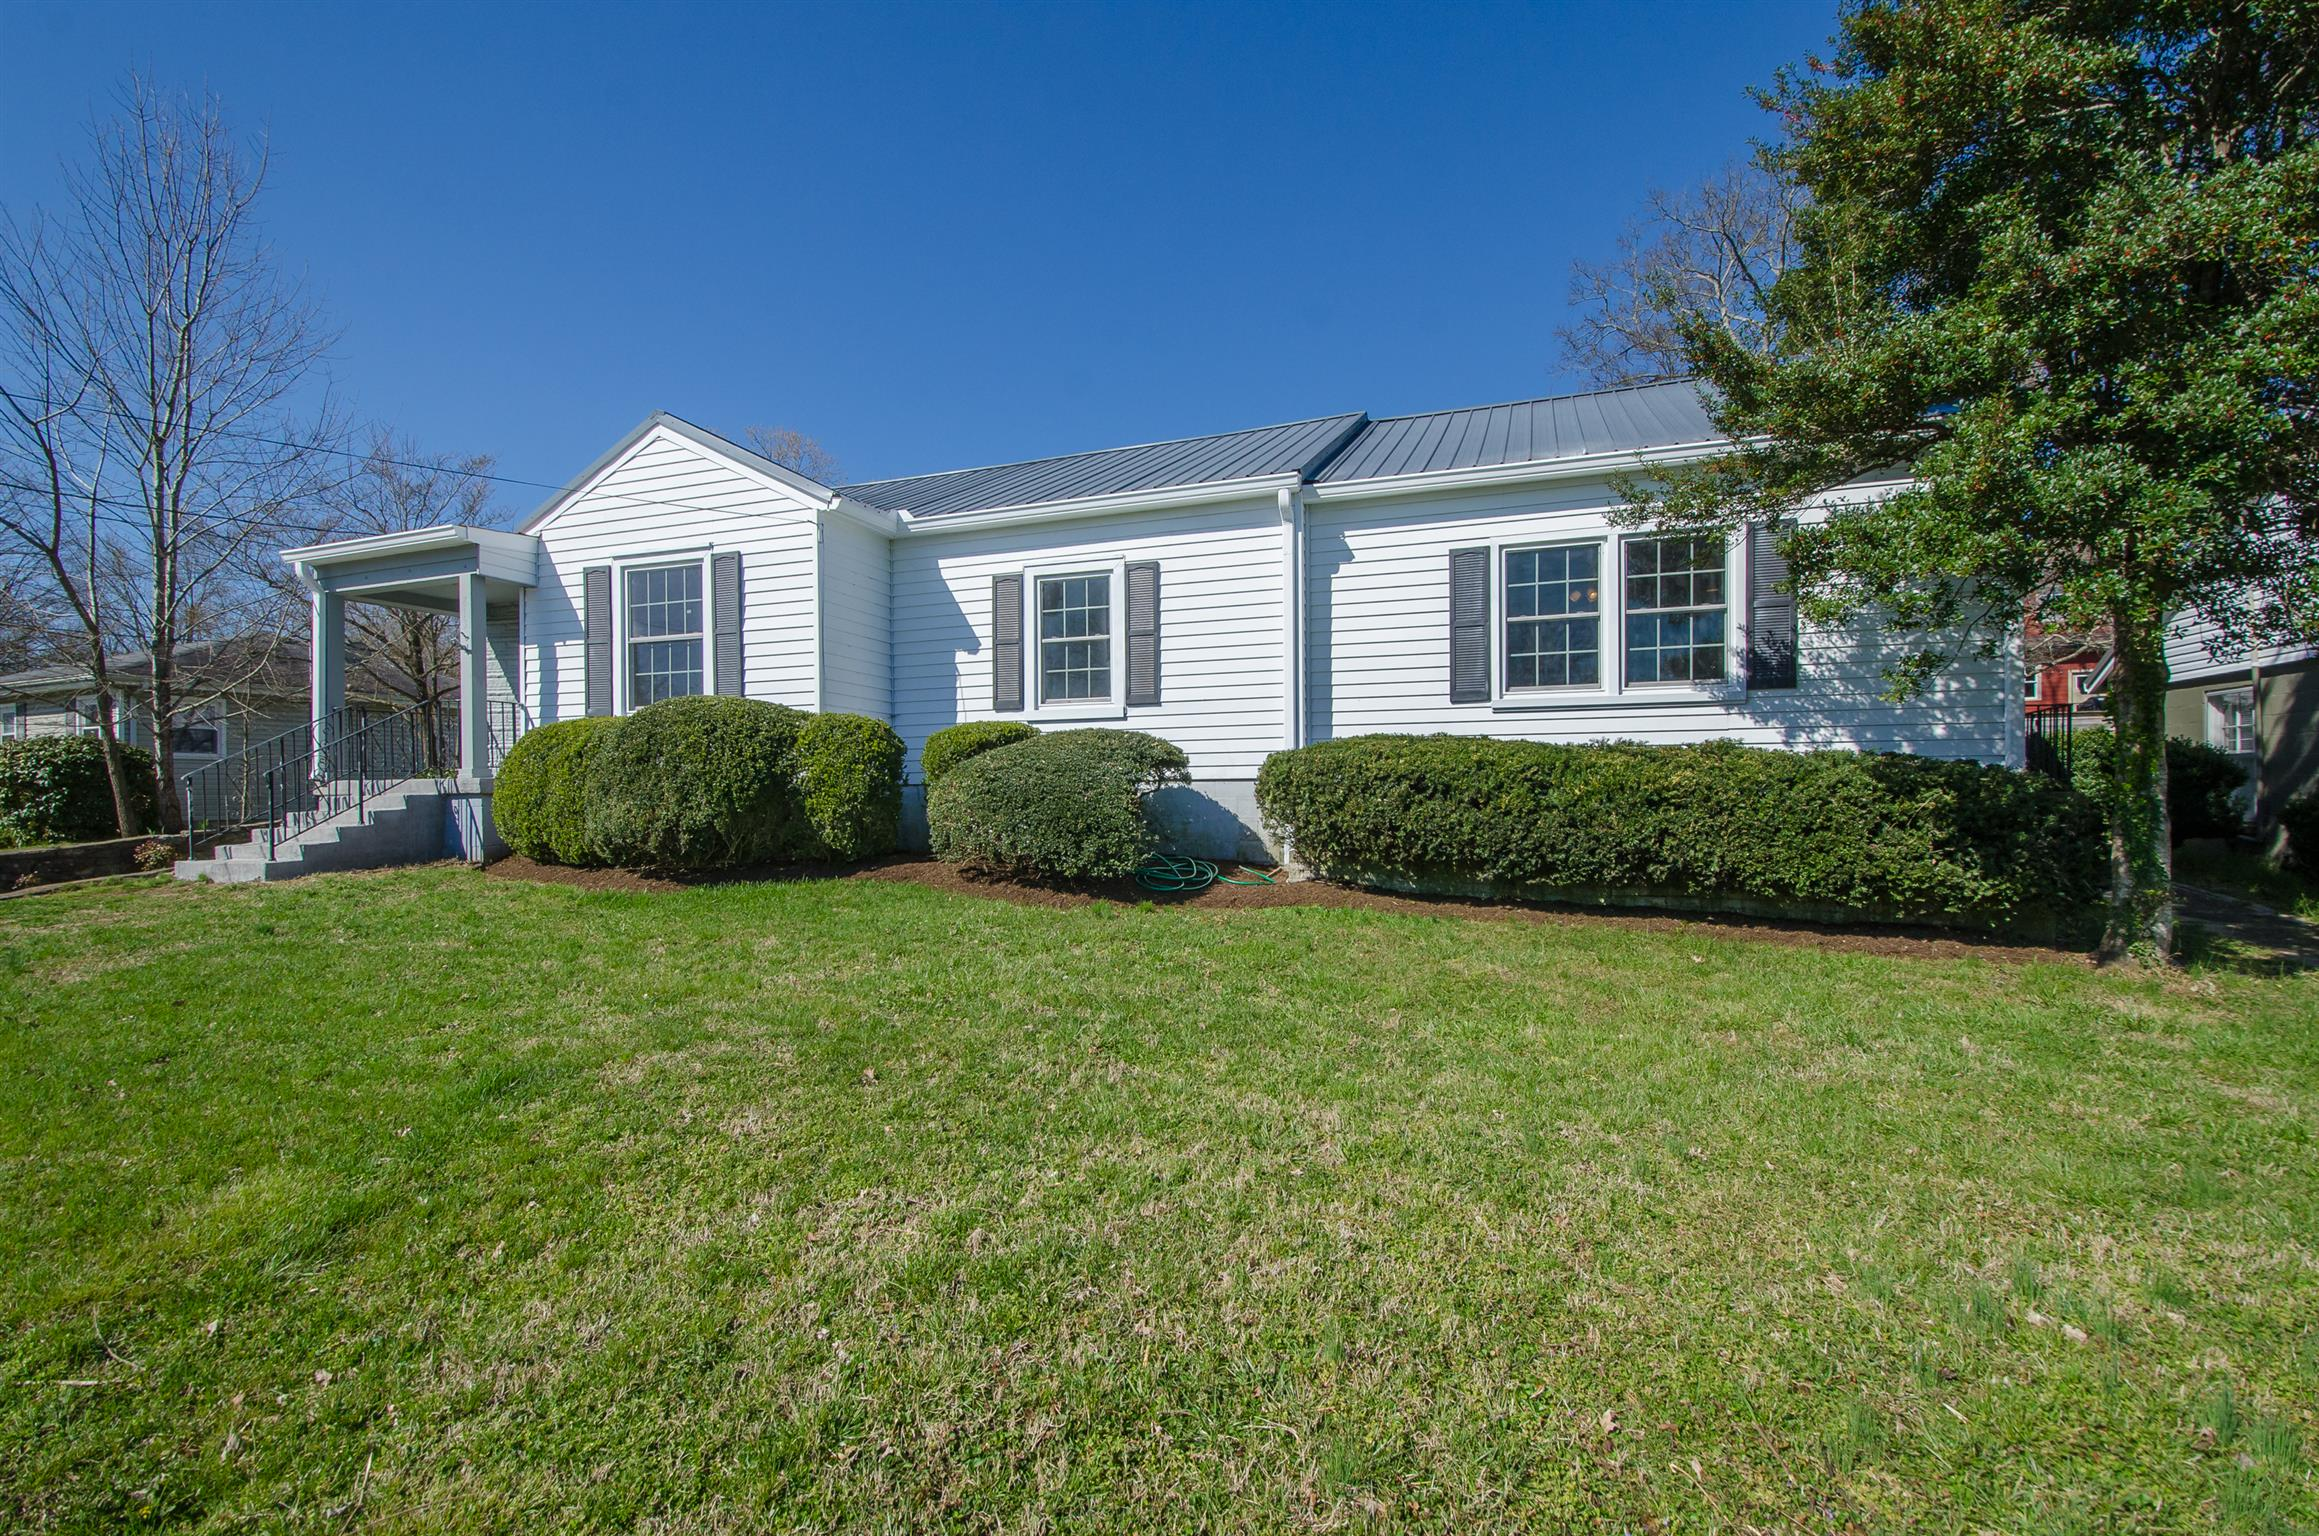 813 W End Cir, Franklin, TN 37064 - Franklin, TN real estate listing